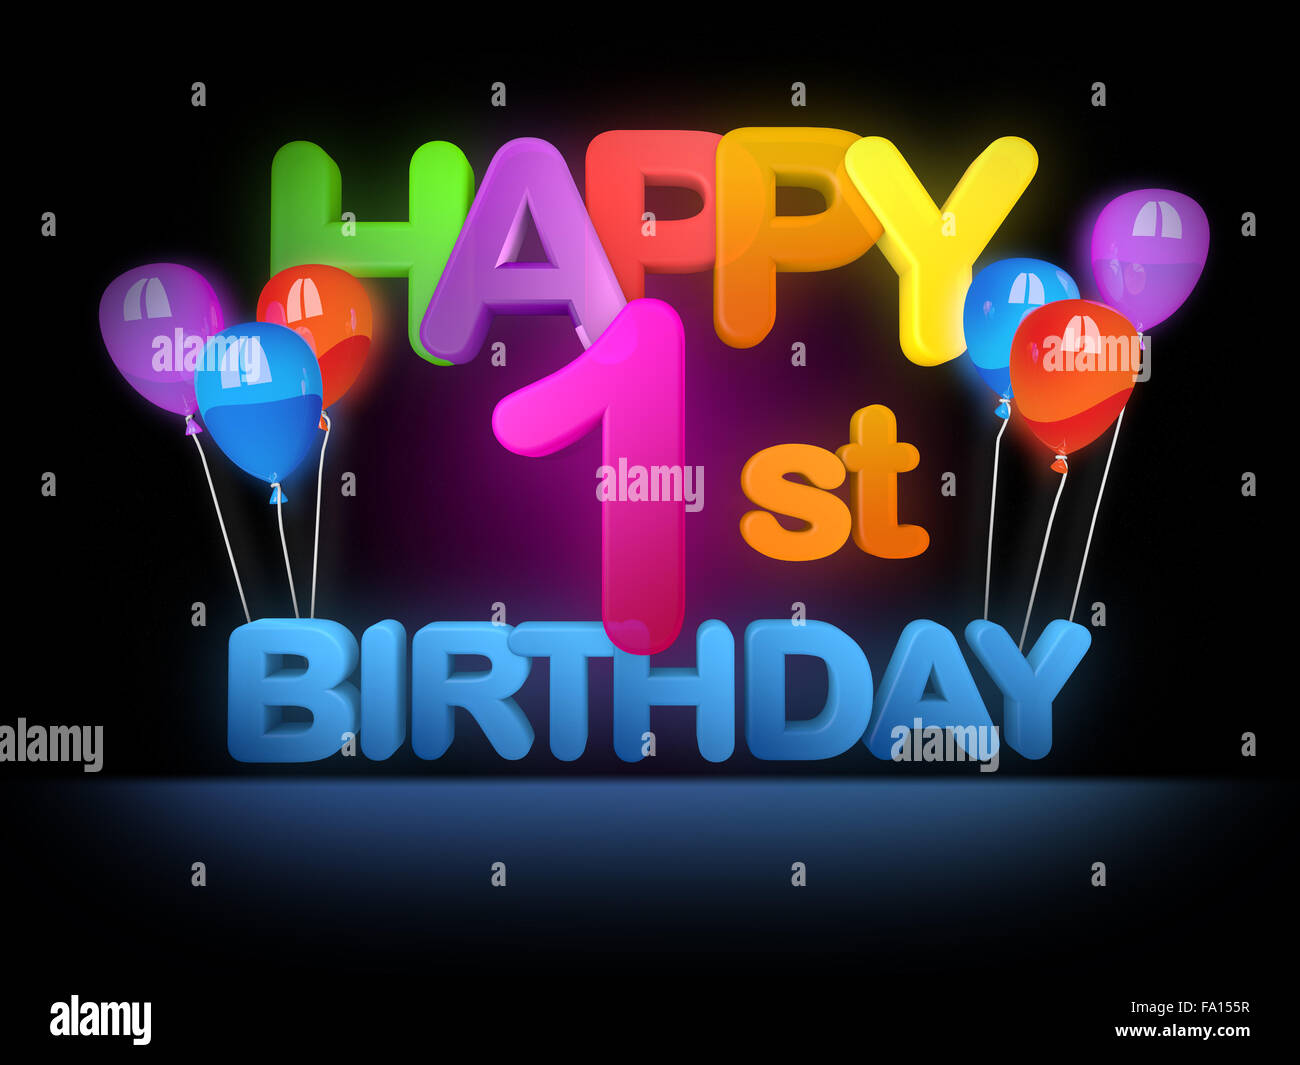 Happy 1st birthday title in big letters stock photo 92224435 alamy happy 1st birthday title in big letters thecheapjerseys Image collections